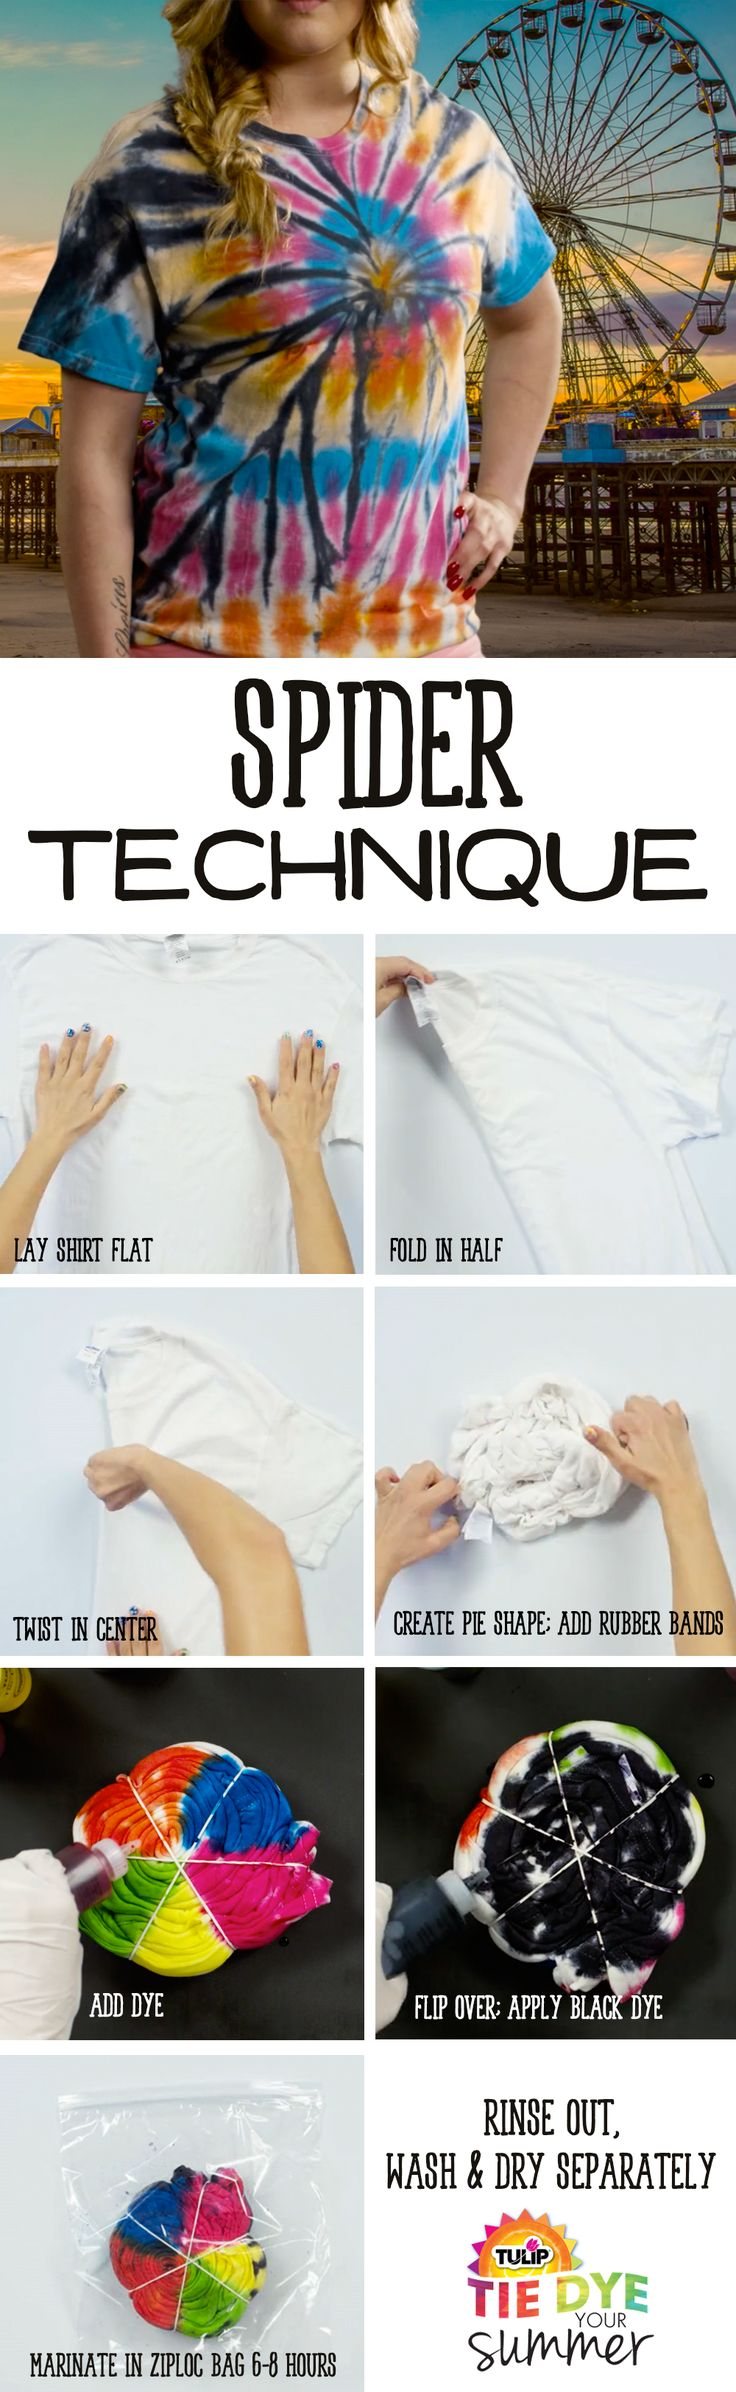 Spider Technique Tie-Dye T-Shirt - how to tie dye a unique tee shirt - DIY summer shirts - tie die tutorial